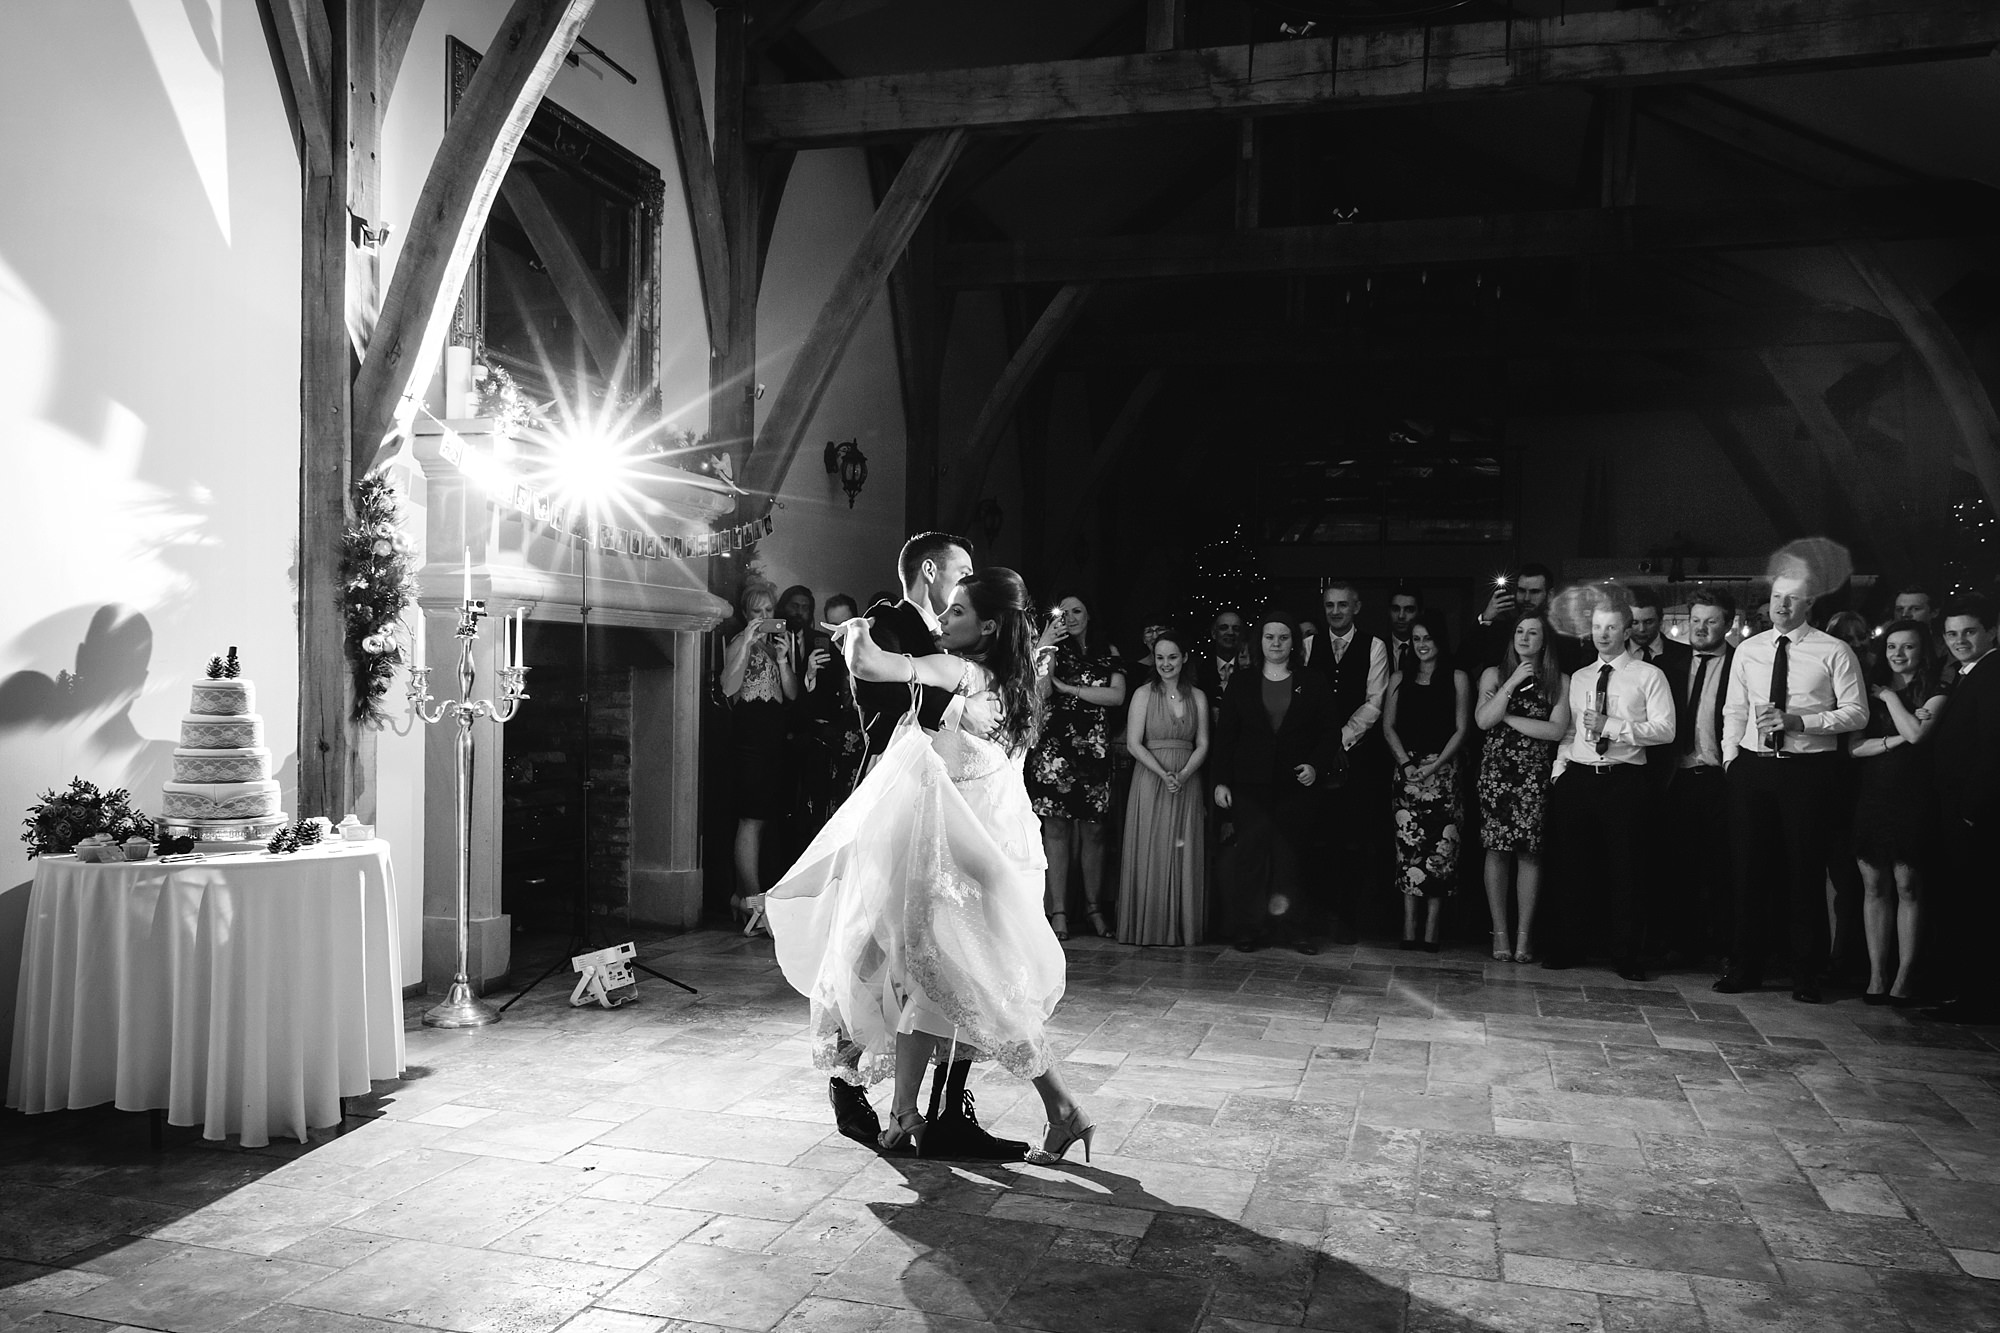 swancar farm wedding bride and groom dance the waltz